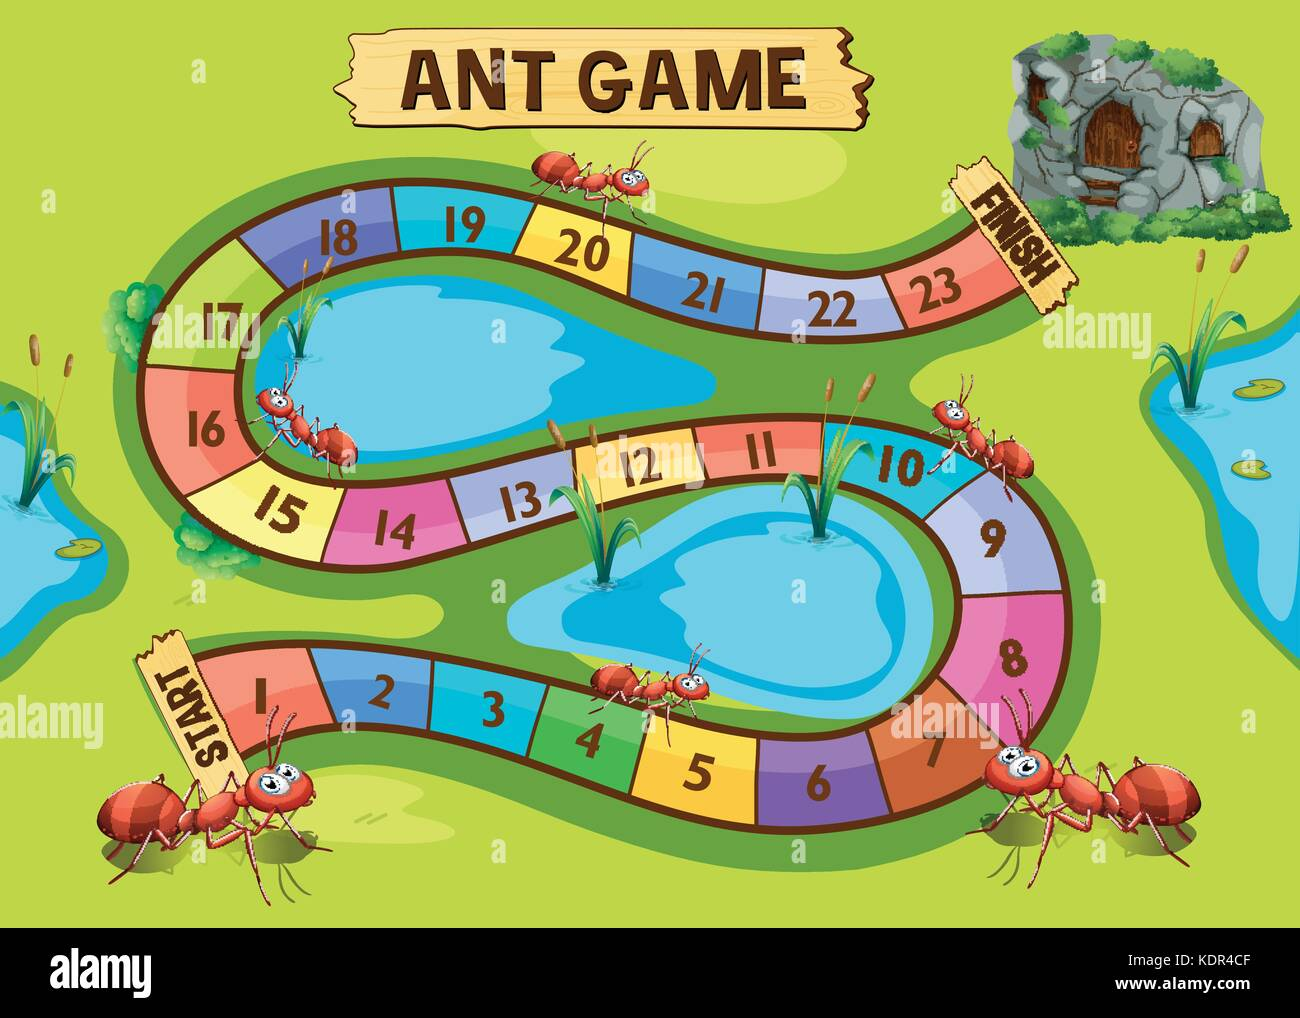 Game template with ant colony in background illustration - Stock Vector